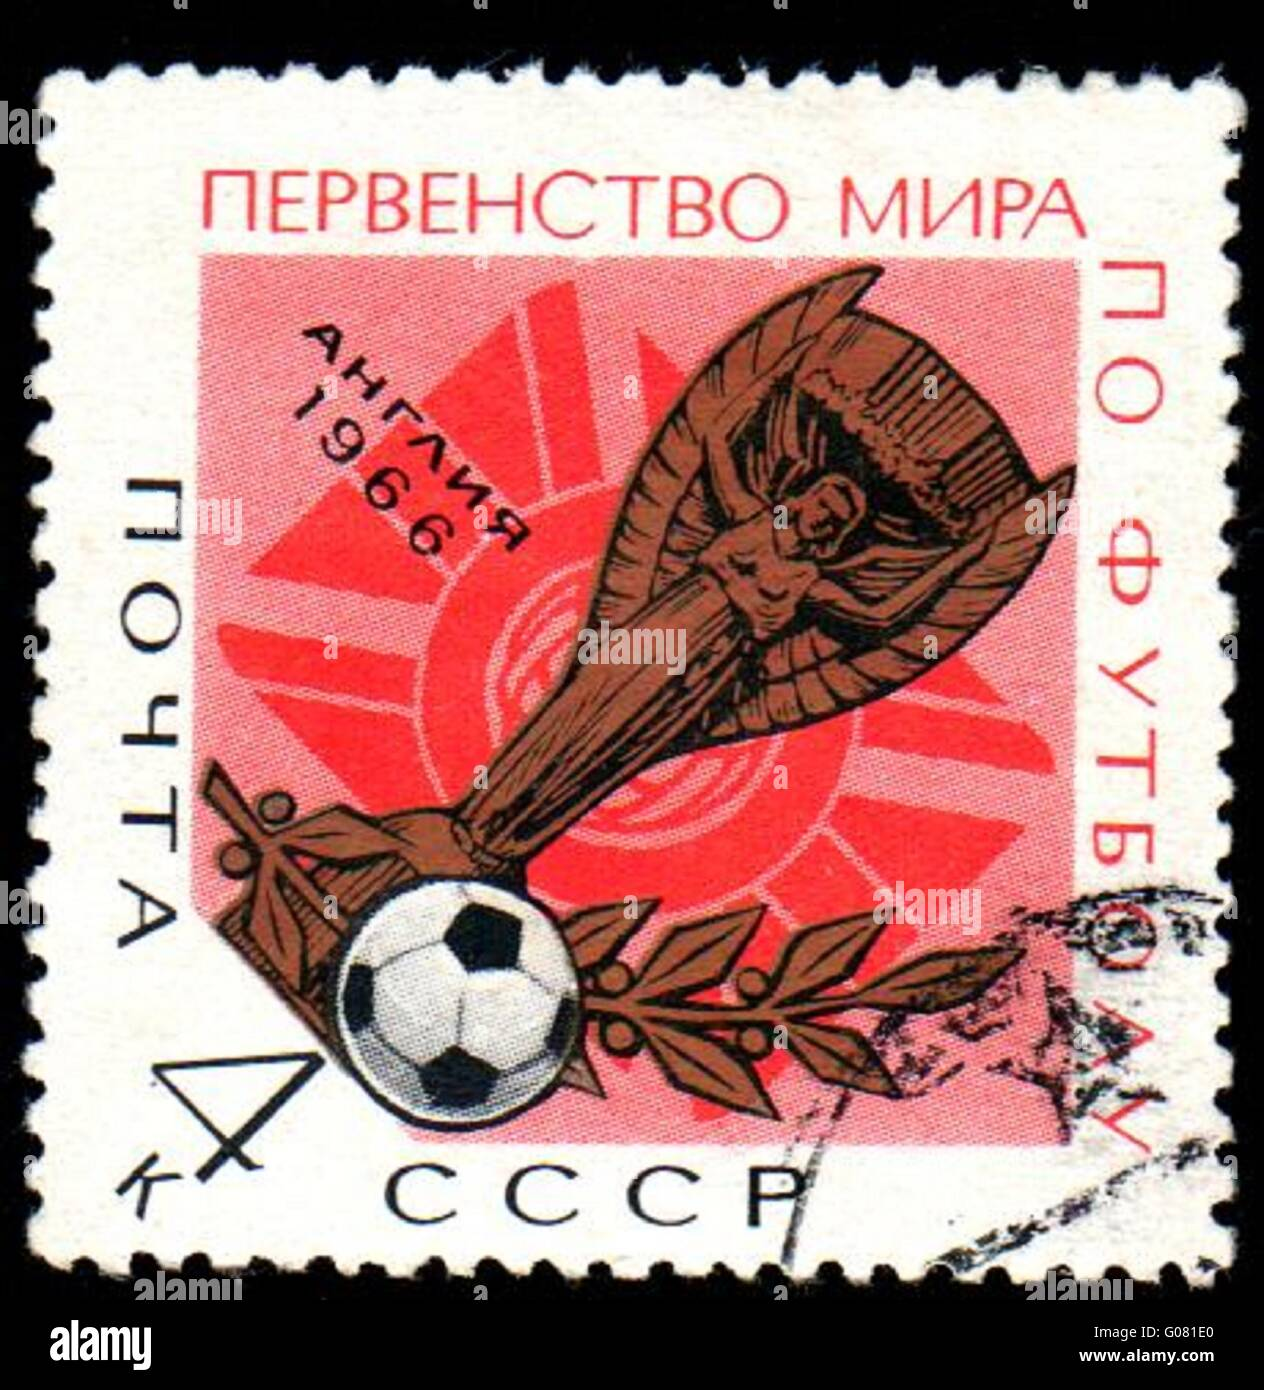 1966 Soviet postage stamp year of manufacture - Stock Image